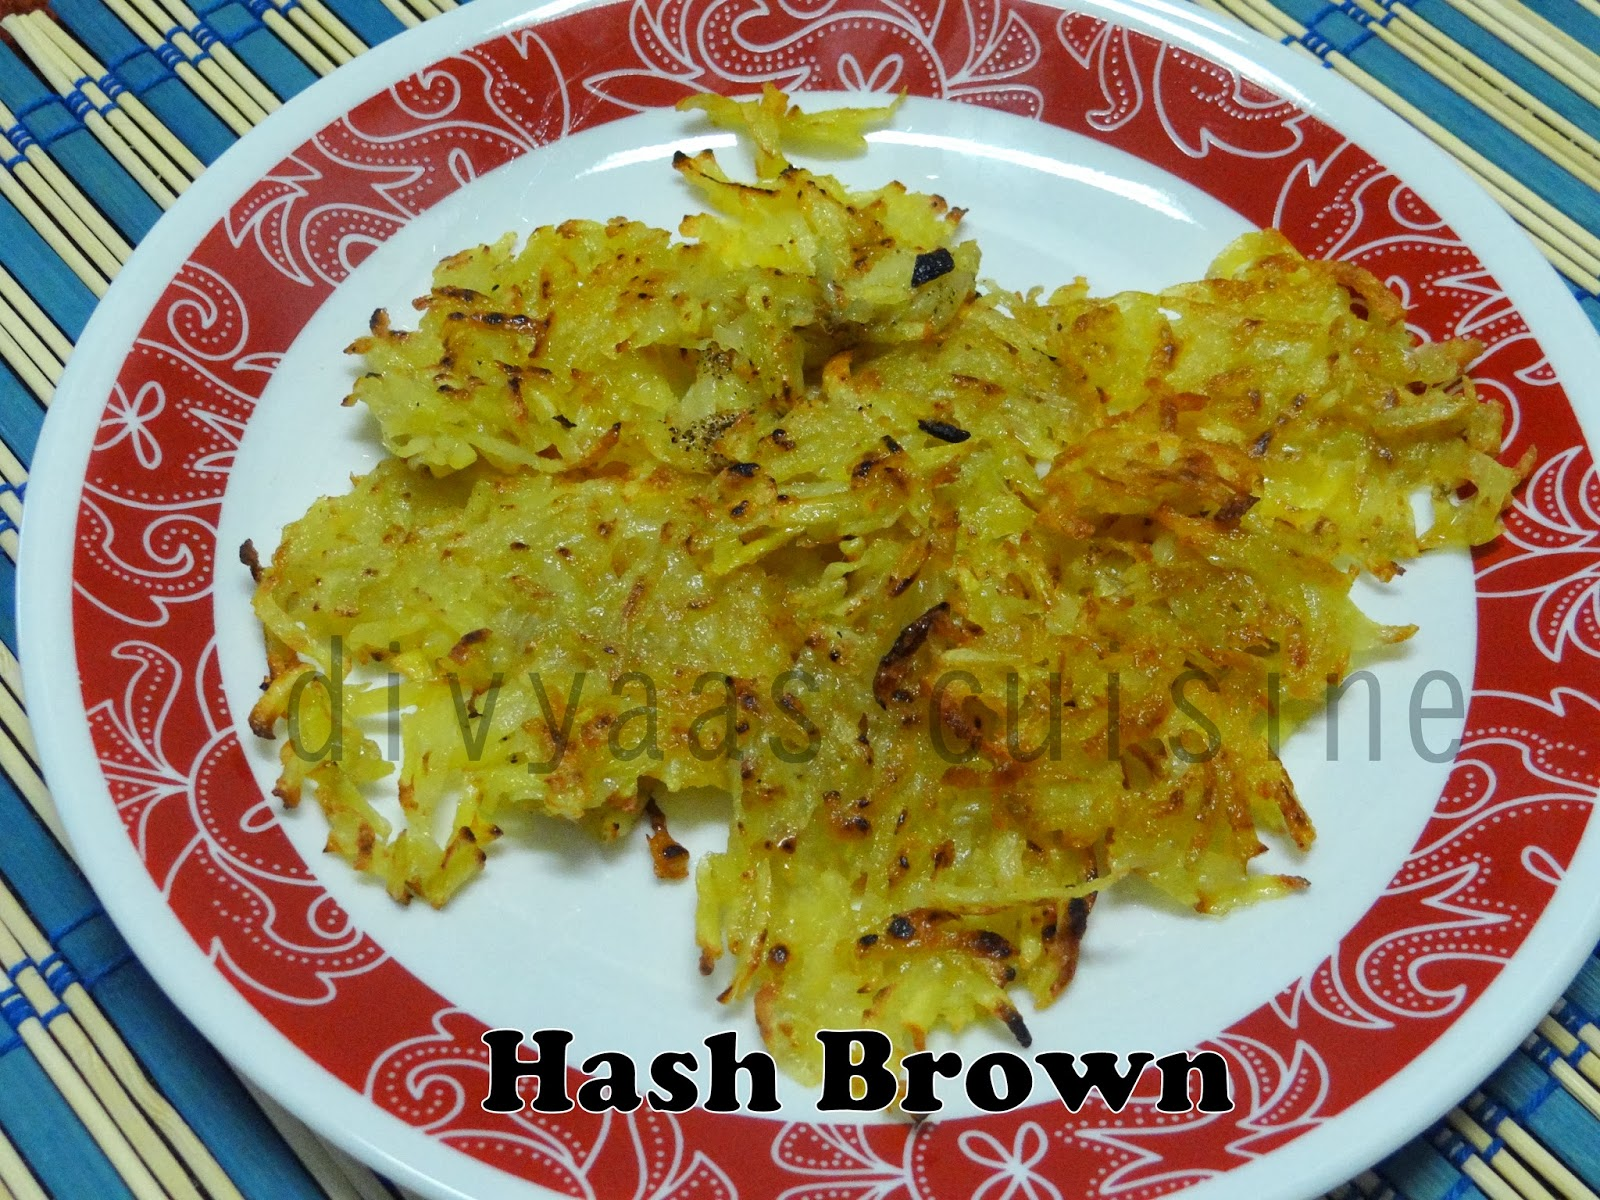 Hash Brown Potato Fry